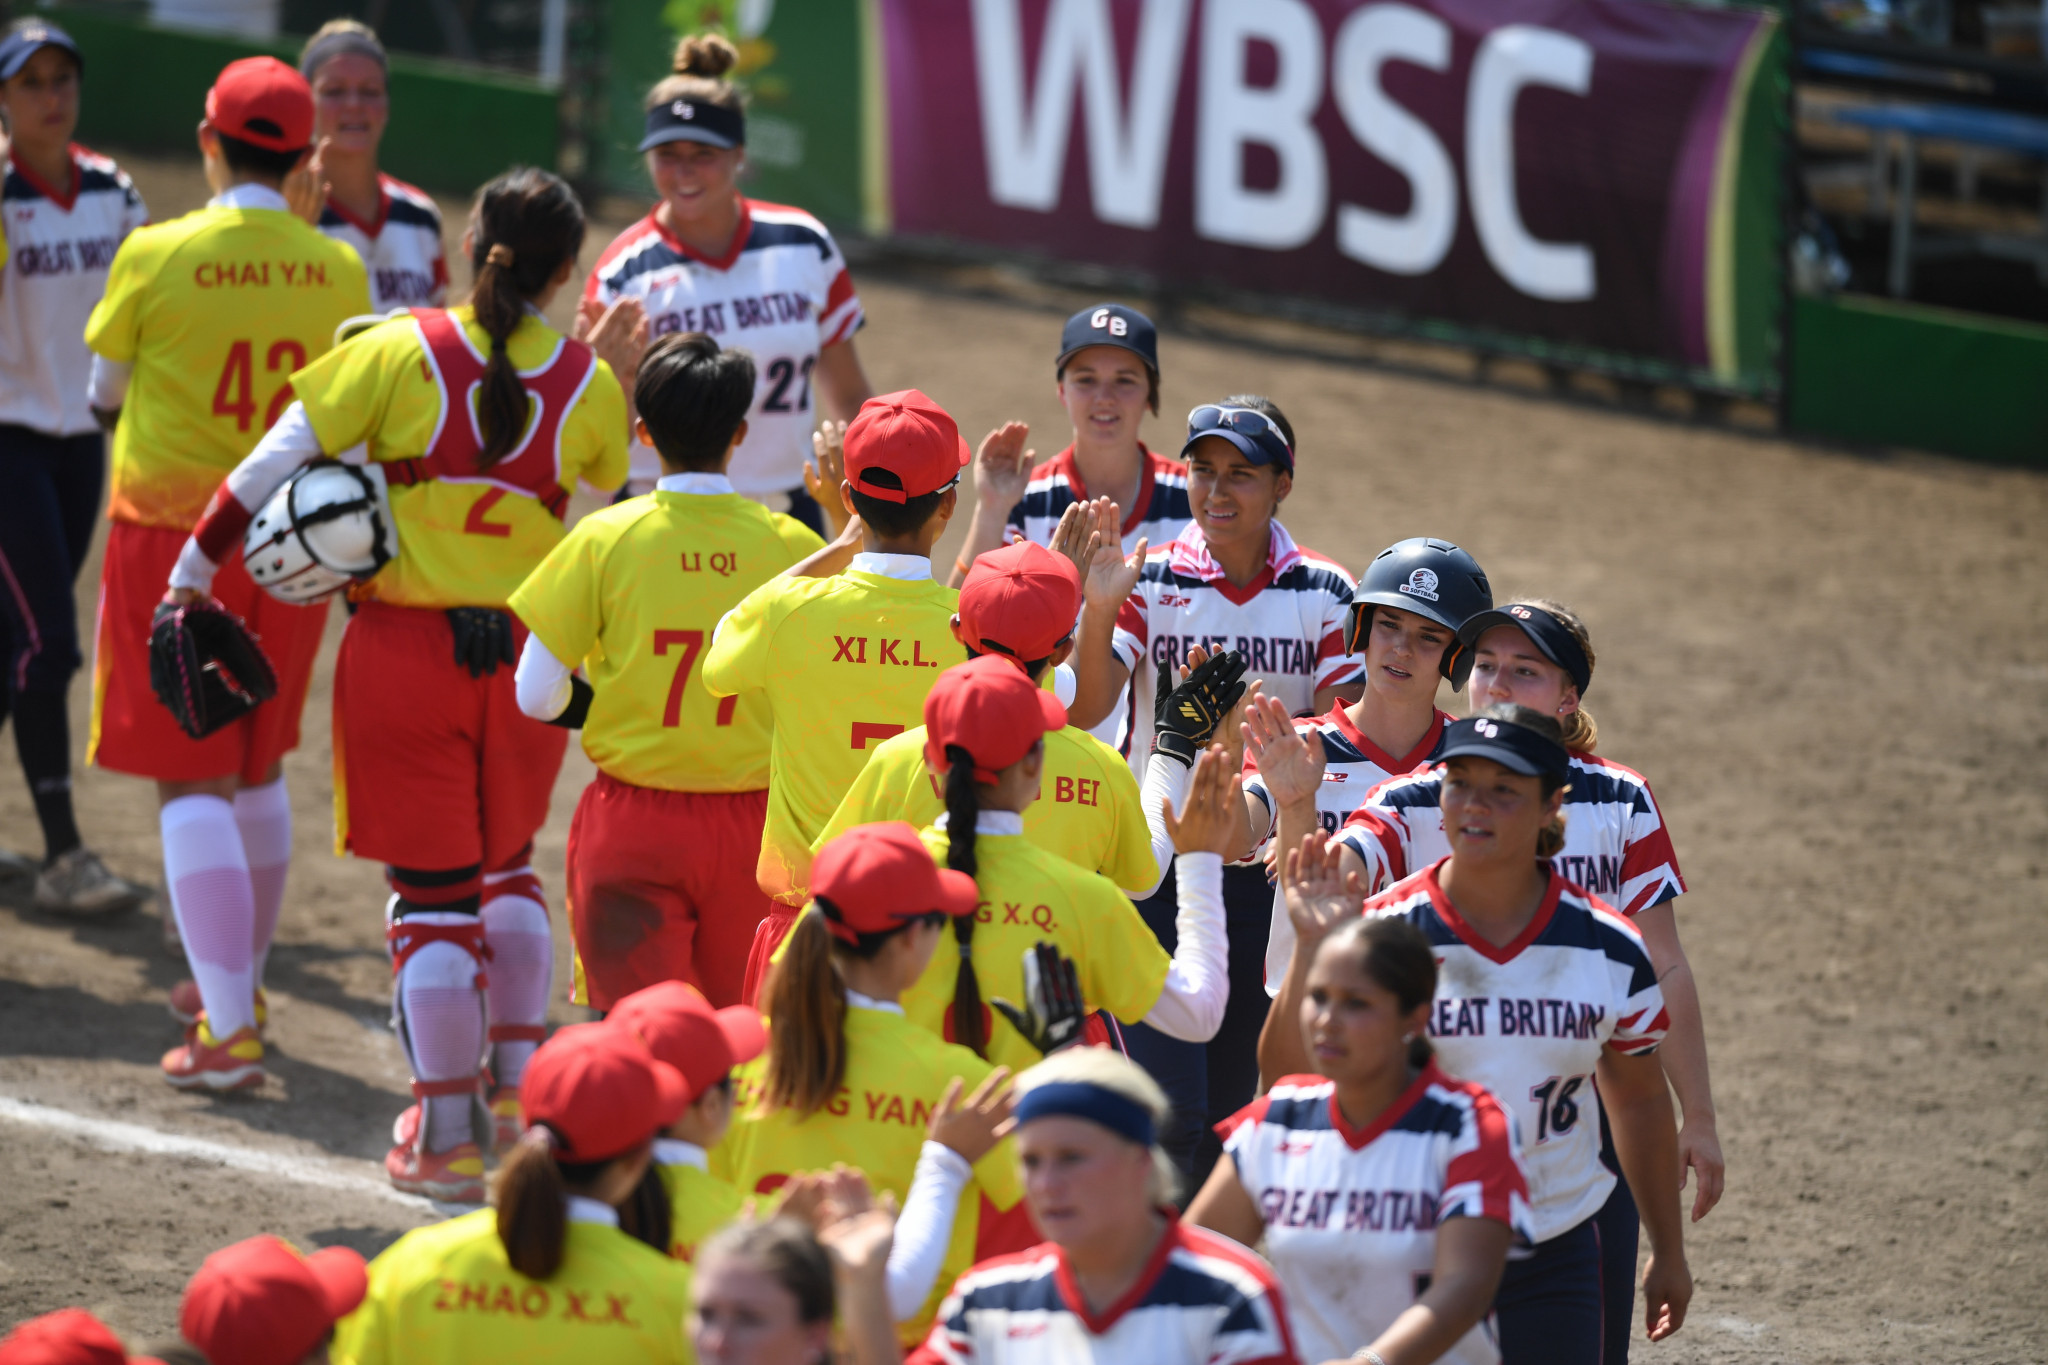 WBSC announces Women's Baseball and all Softball World Cups to move to four-year cycle